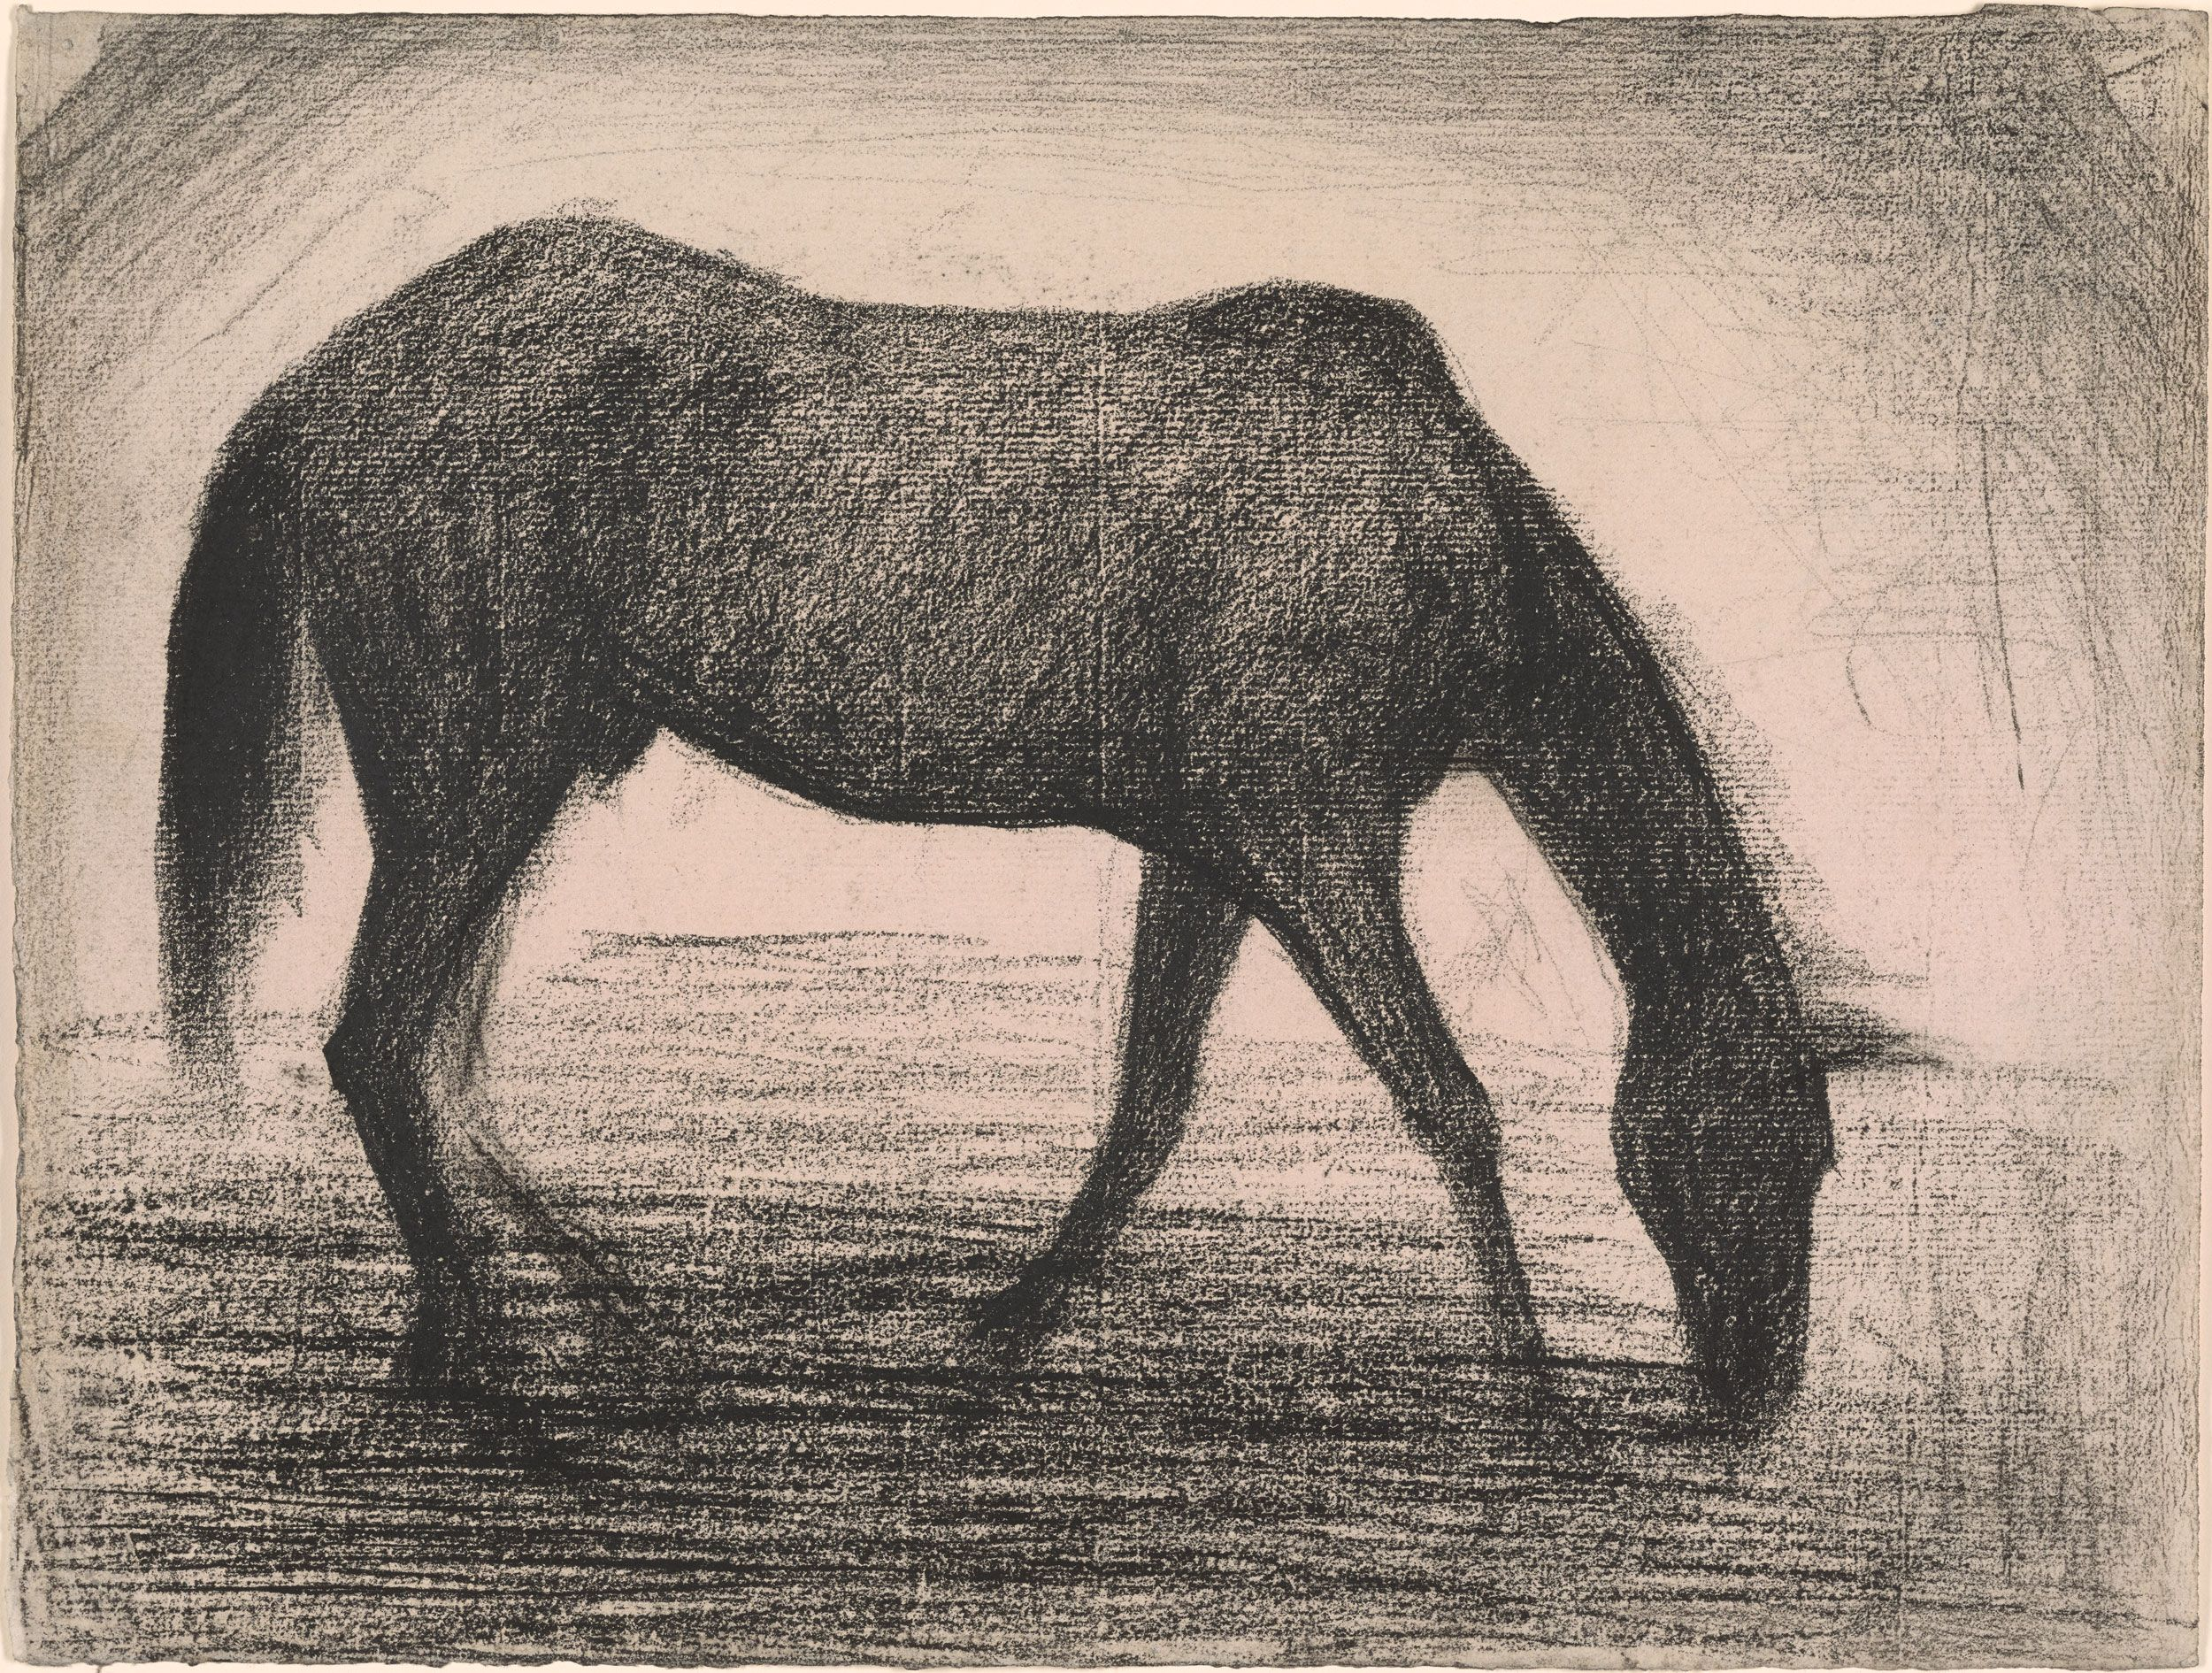 Georges Seurat 1859-1891 Le Cheval Noir 1882 Black conte crayon on laid paper. 9 3/8 x 12 3/8 inches (238 x 314 mm)